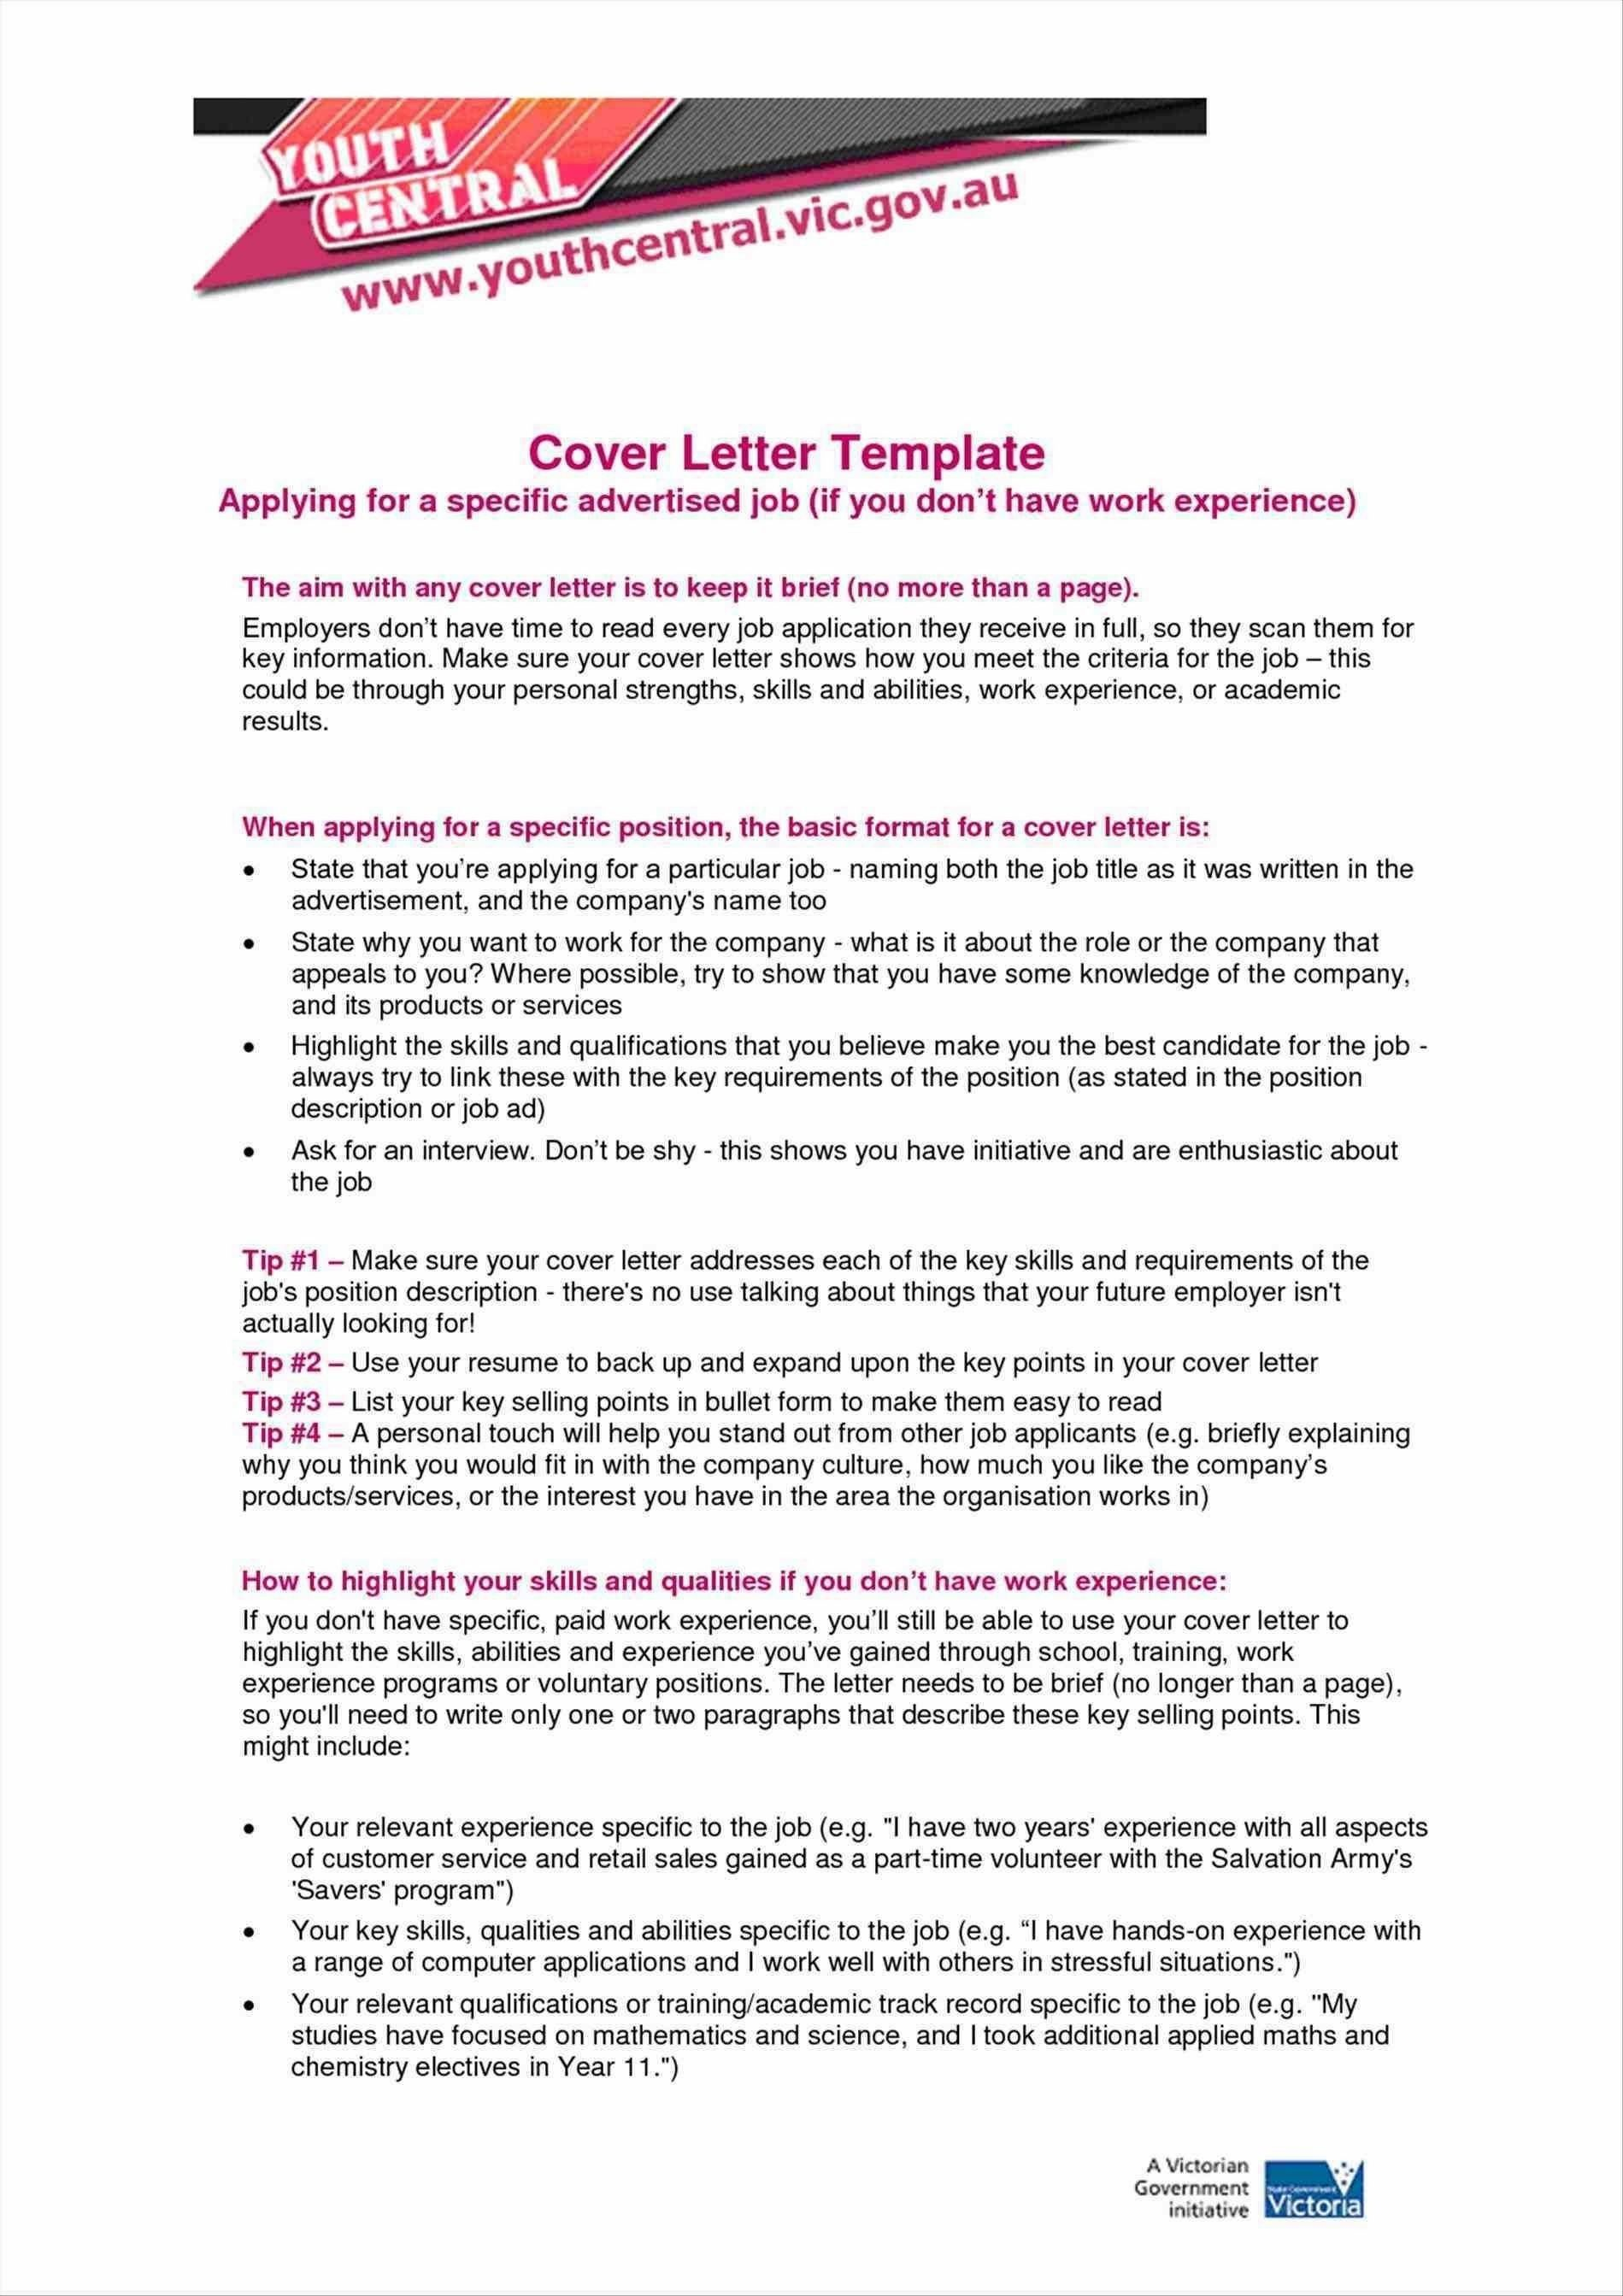 Cover Letter Template Victorian Government